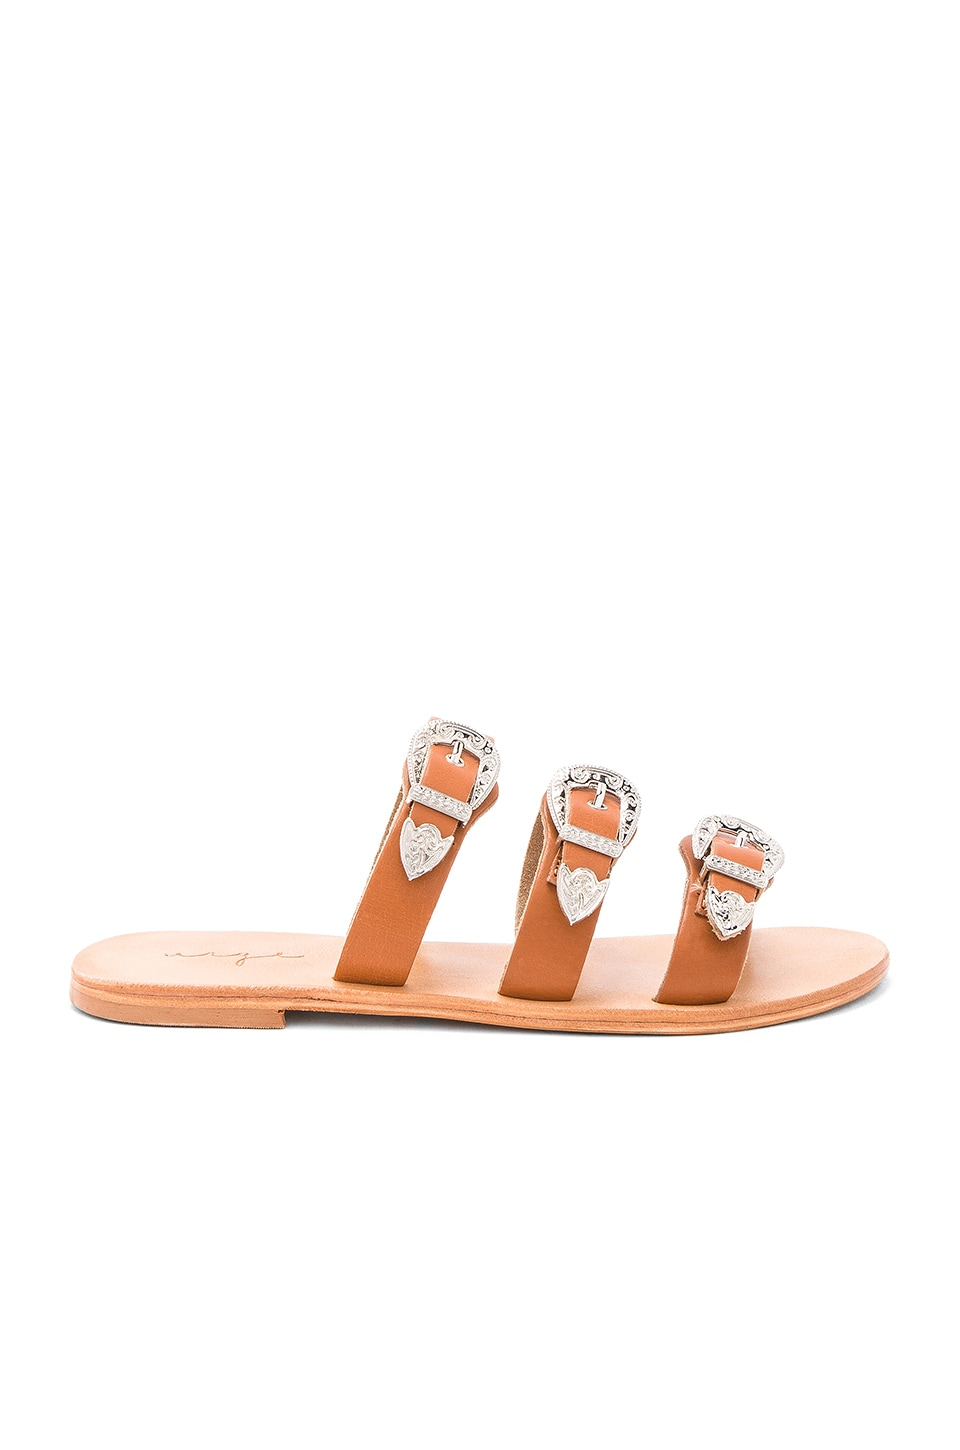 Rogue Sandal by Urge